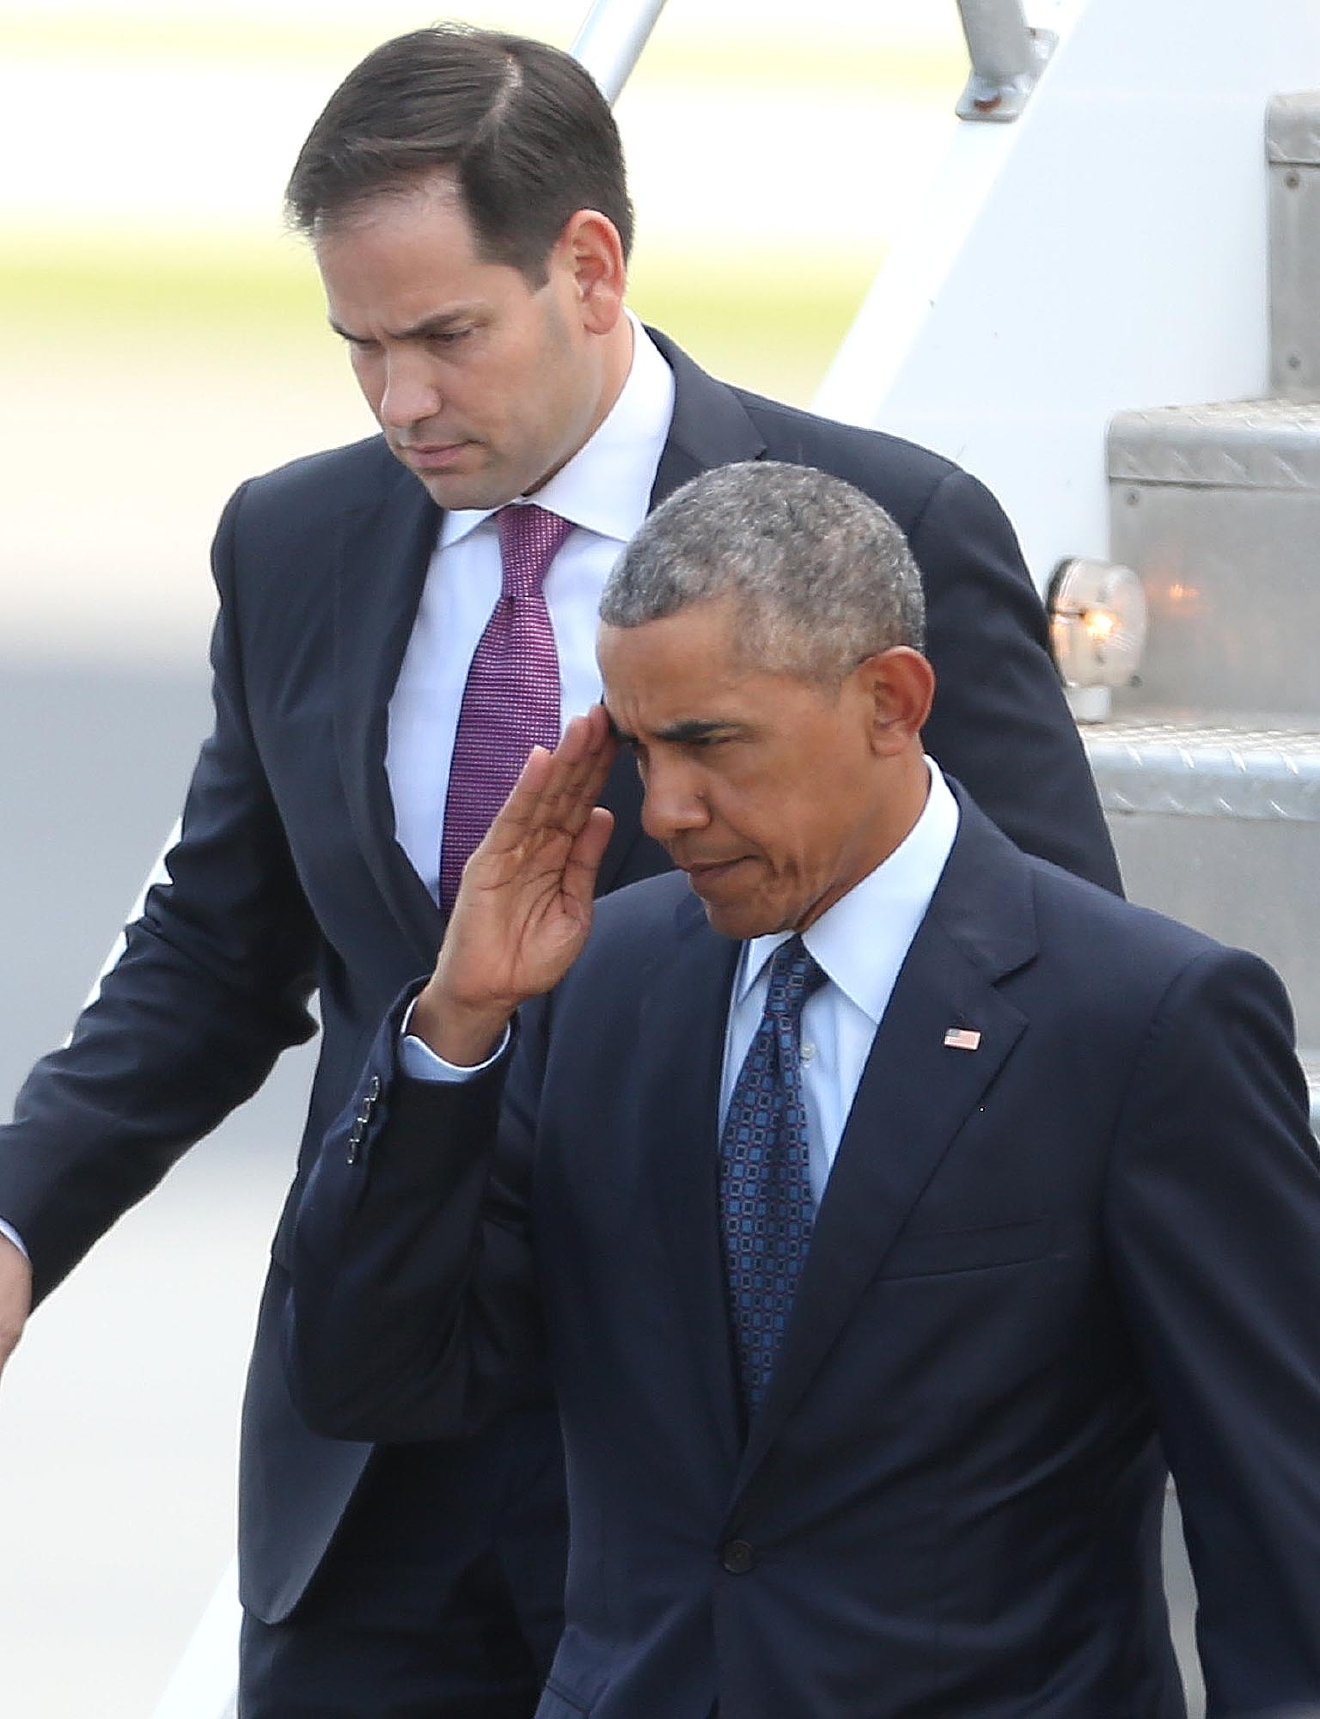 President Obama salutes in front of Florida Sen. Marco Rubio, top, after as the president deplanes after his arrival at Orlando International Airport, Thursday, June 16, 2016, in Orlando, Fla. Obama is in Orlando today to pay respects to the victims of the Pulse nightclub shooting and meet with families of victims of the attack. (Stephen M. Dowell/Orlando Sentinel via AP) MAGS OUT; NO SALES; MANDATORY CREDIT